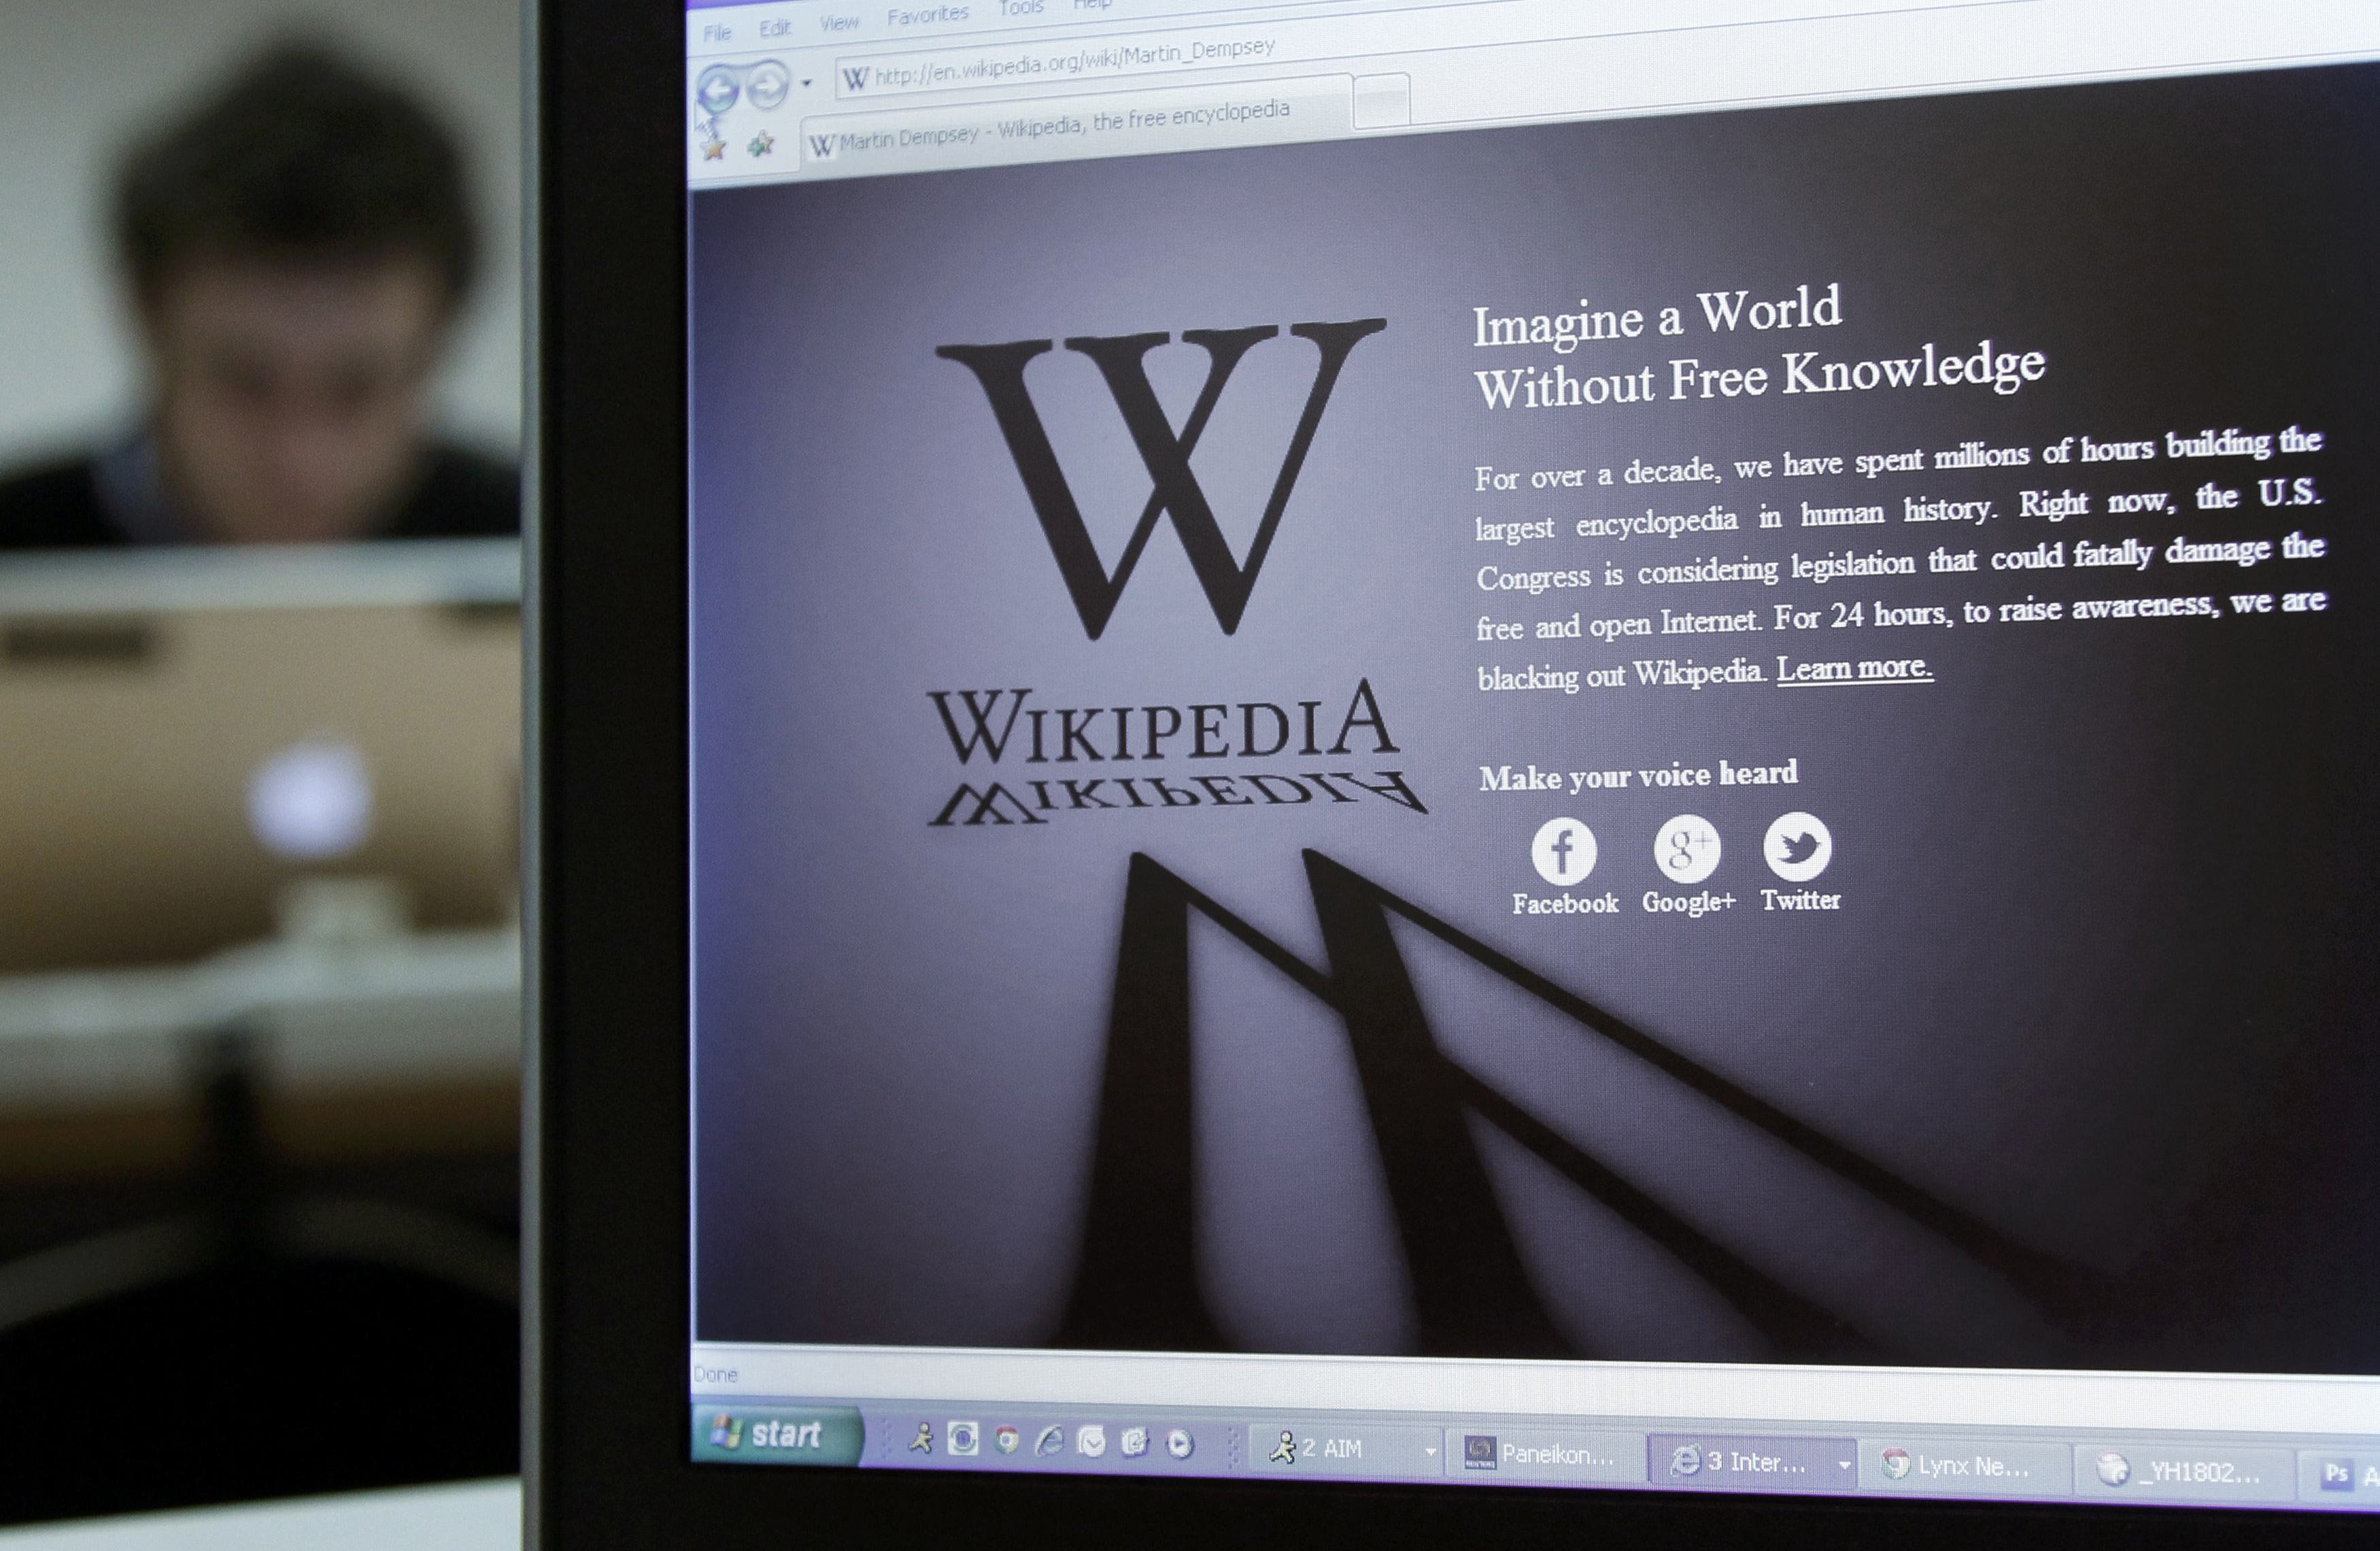 Wikipedia hoax discovered after 10 years